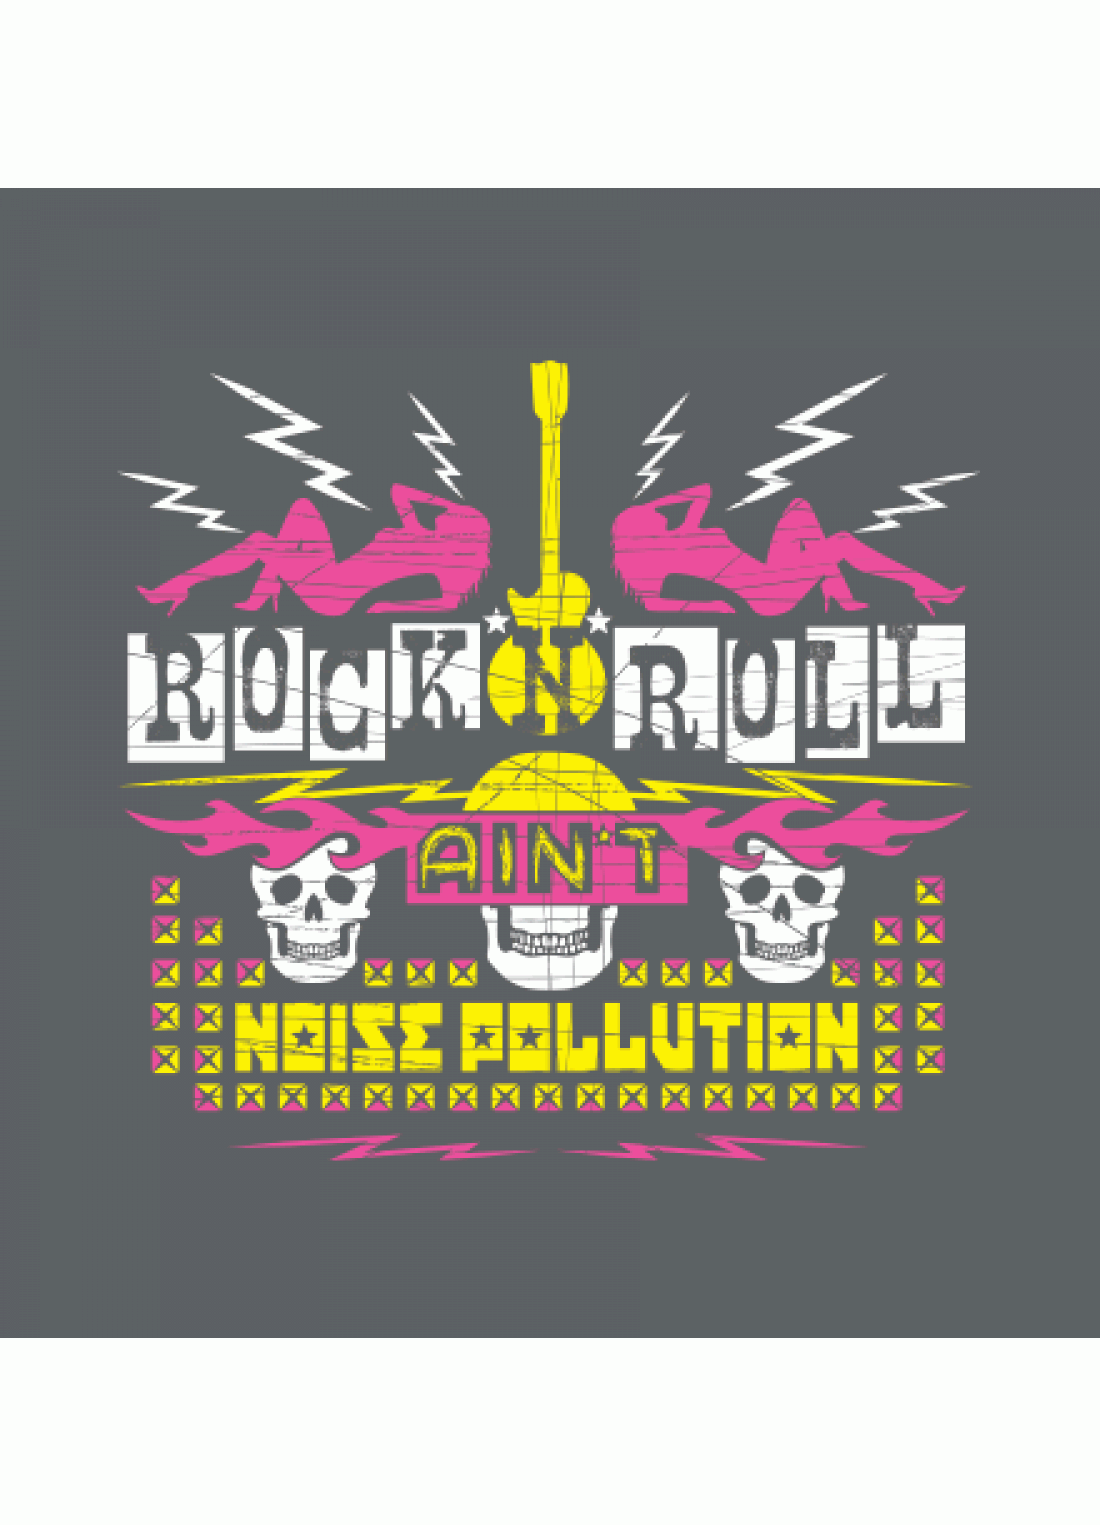 . PlusPng.com Rock N Roll Ainu0027t Noise Pollution T-shirt - Poster On Noise Pollution PNG